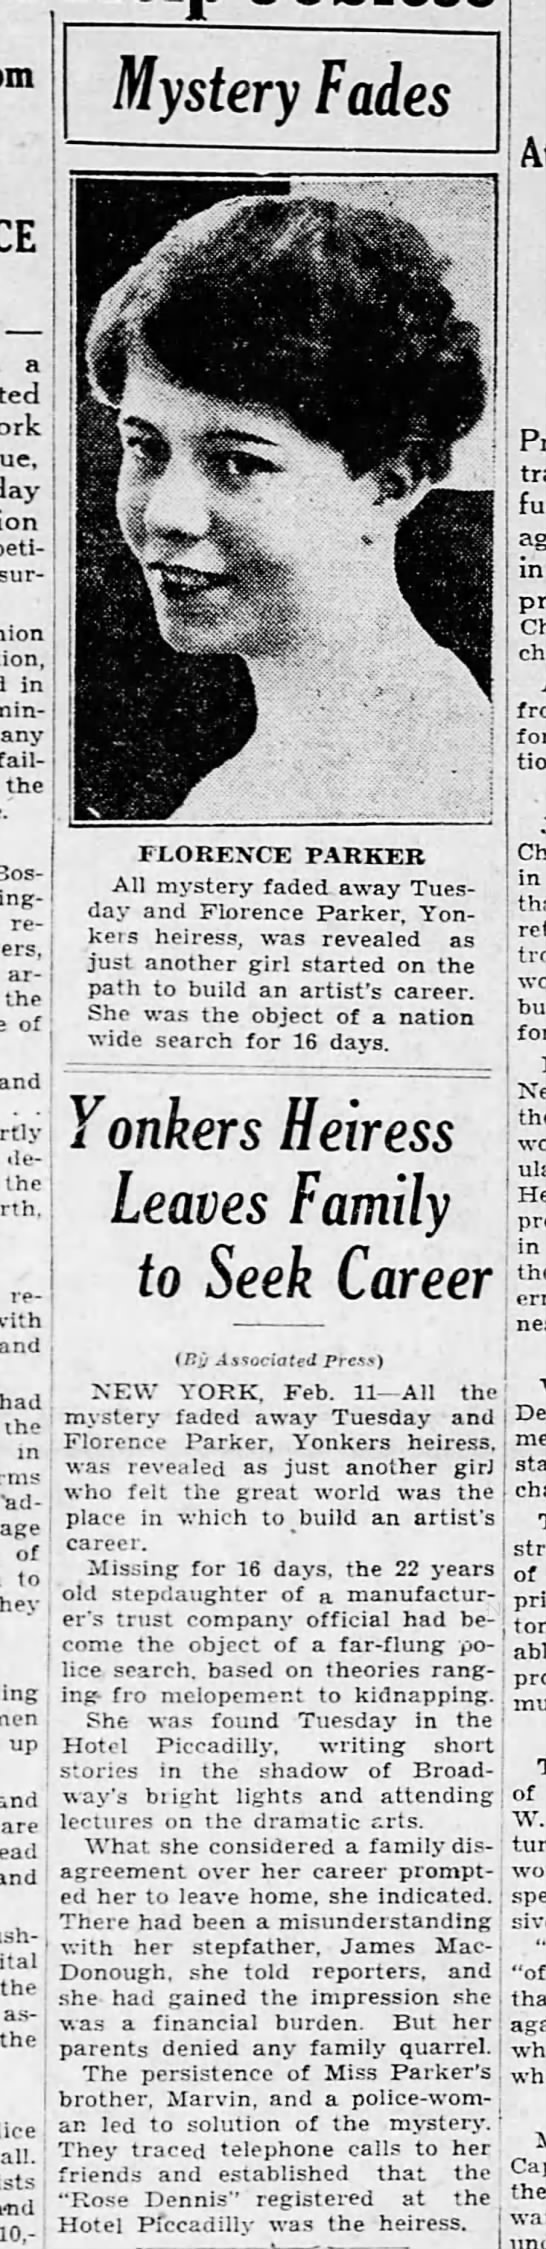 YONKERS HEIRESS FEB 11 1931 FOUND AFTER DISAPPEARING